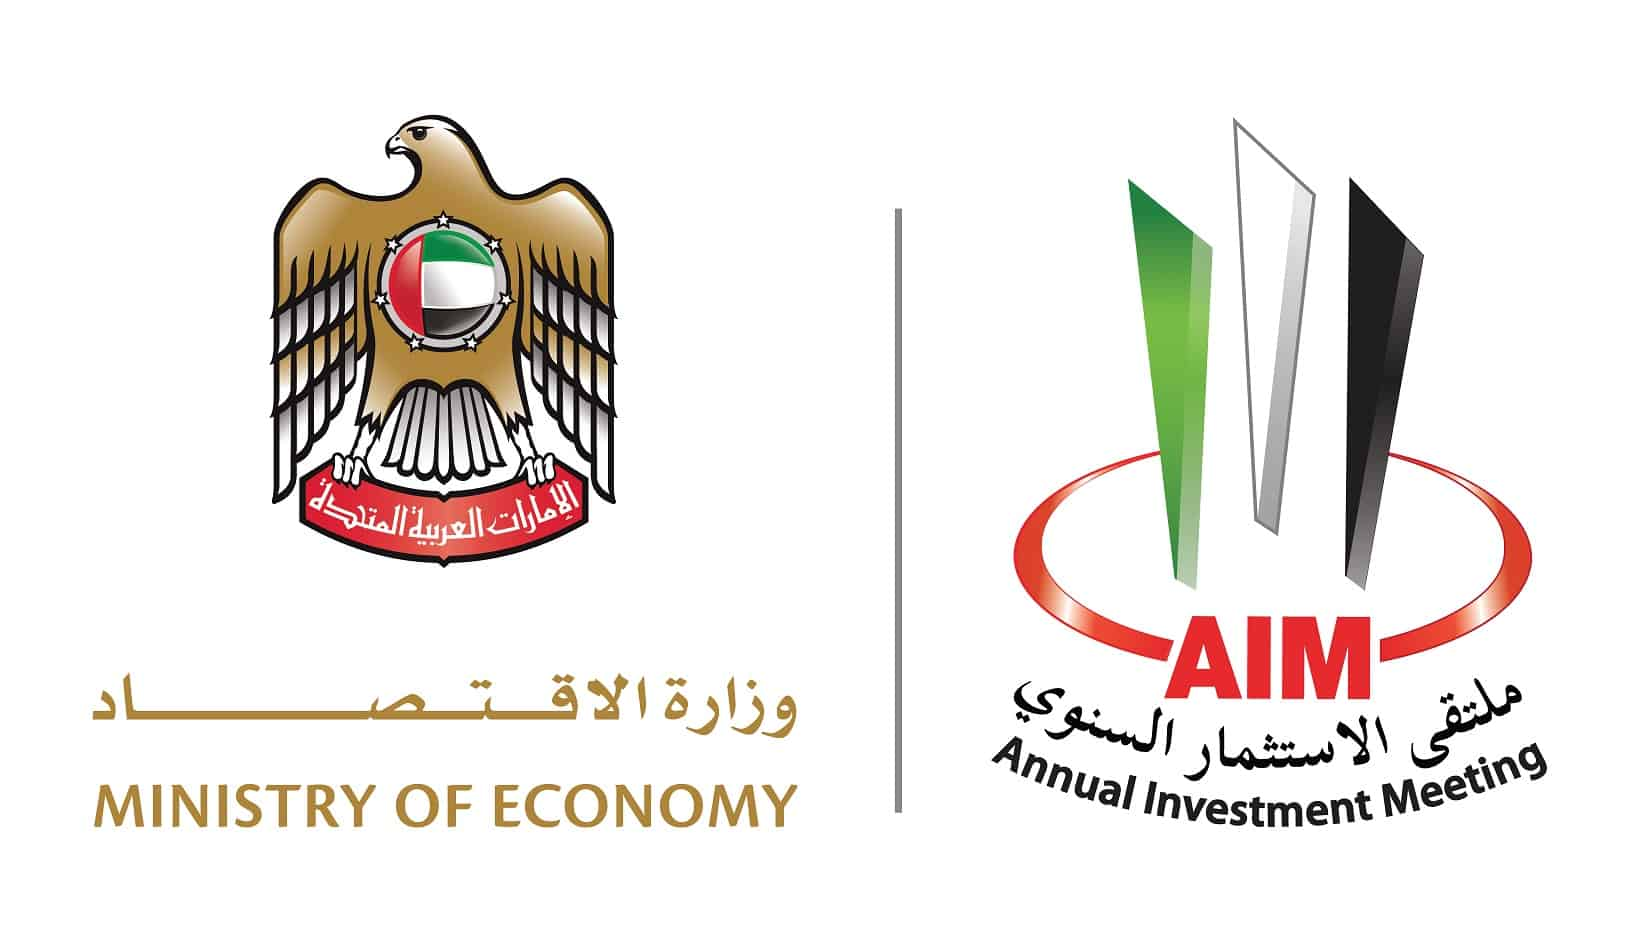 Annual Investment Forum 2019 announces launch of its ninth edition in April